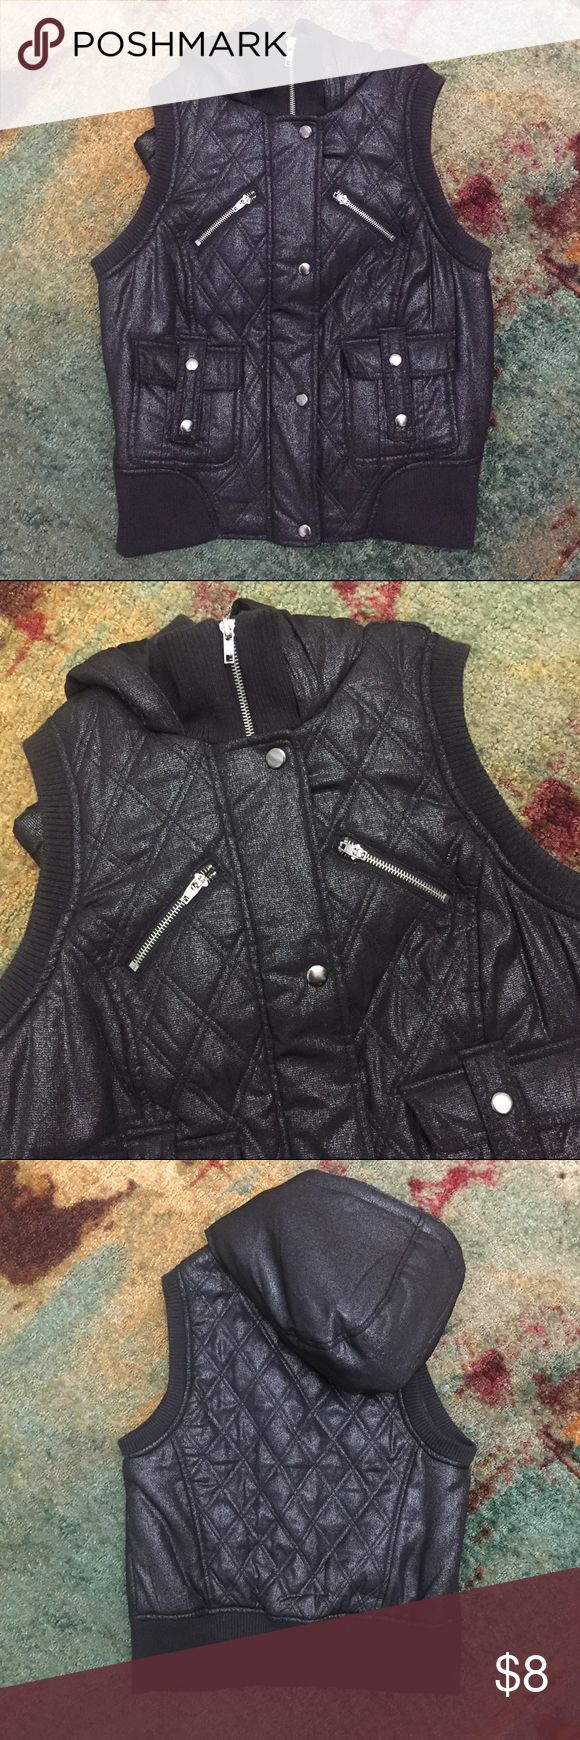 Allen B. Black Hooded Metallic Vest, M Allen B. by Allen Schwartz Black Hooded Metallic Vest, M; GUC, visible pulls on stretchy fabric, especially inside the vest. Shell/Lining/Fill: 100% polyester, Trim: 99% polyester, 1% spandex ABS Allen Schwartz Jackets & Coats Vests